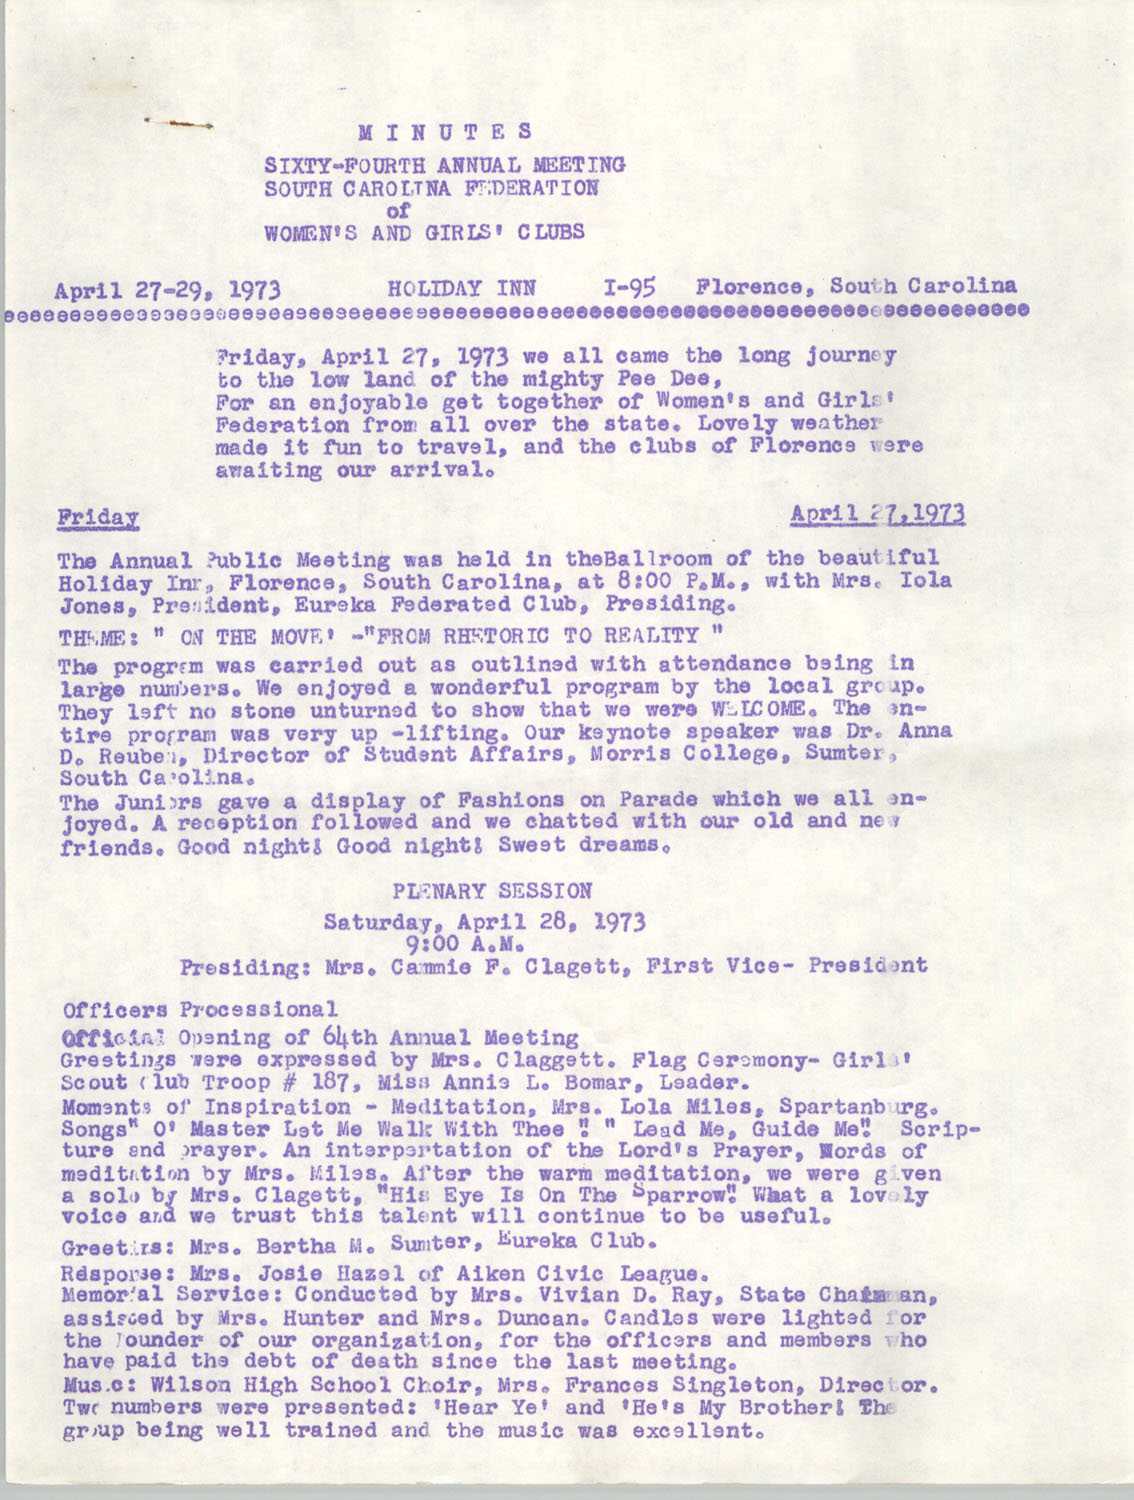 Minutes, South Carolina Federation of Women's and Girl's Clubs, April 27-29, 1973